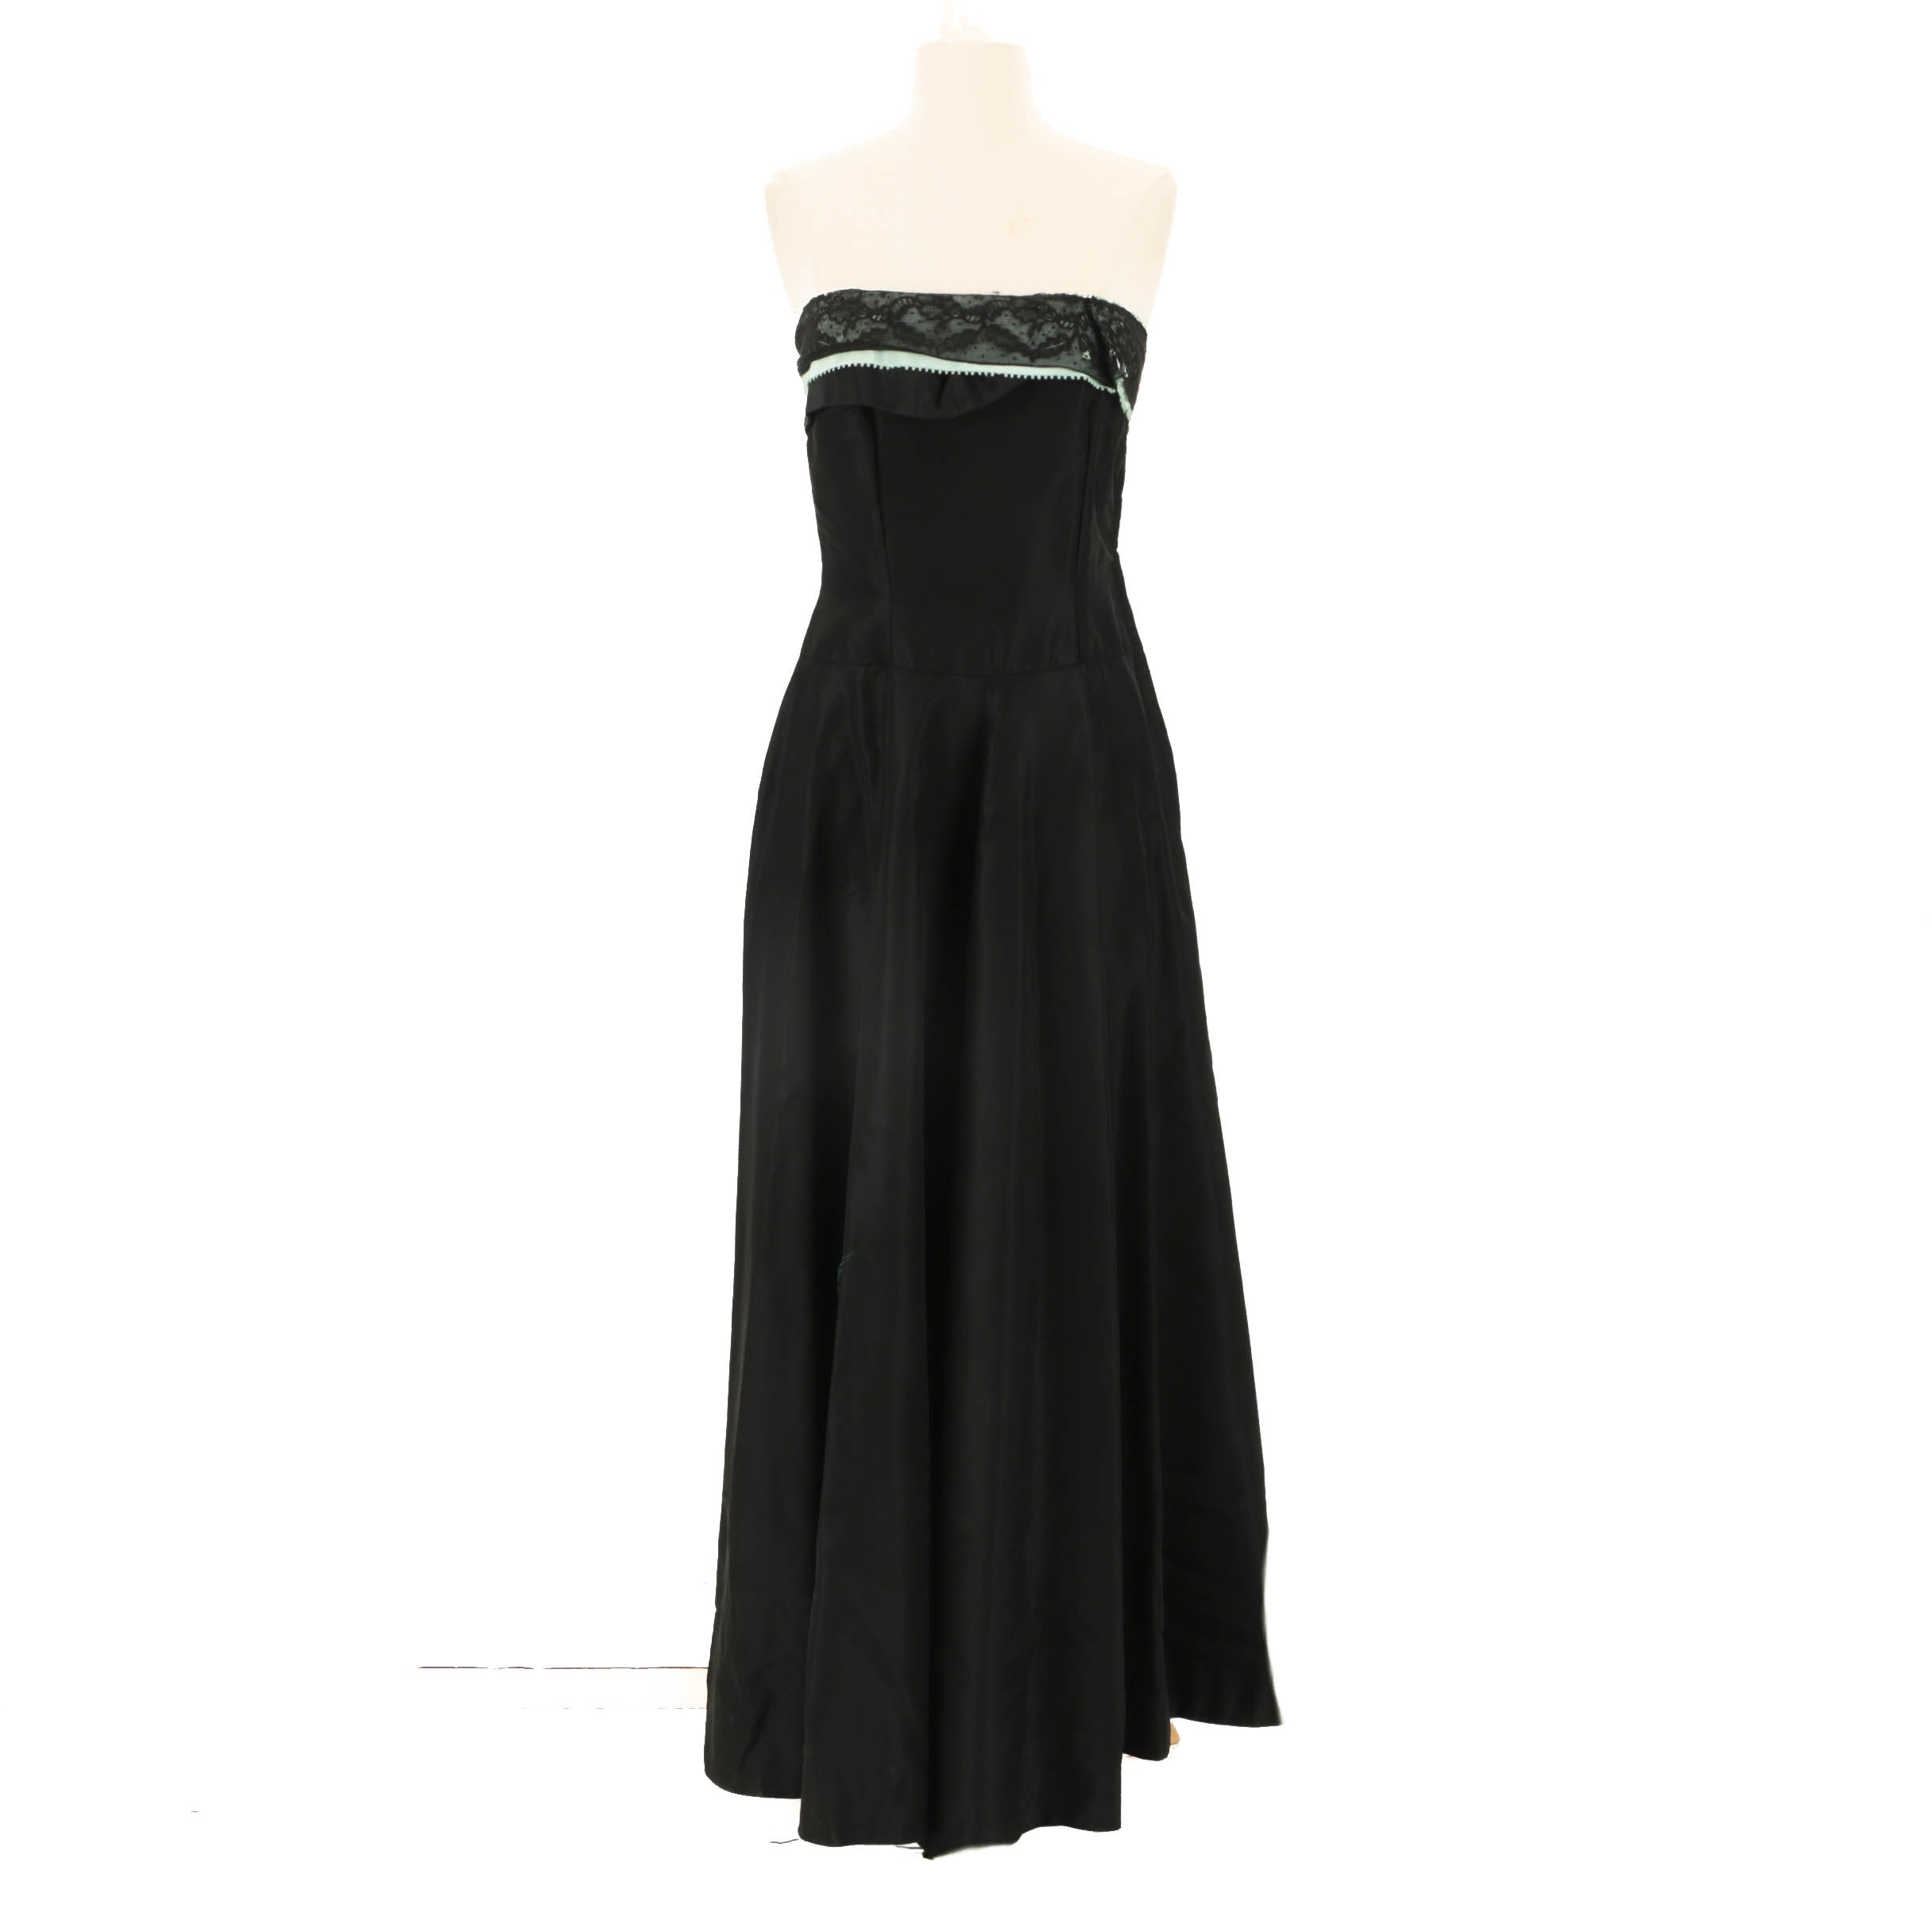 1950s Vintage Black Strapless Gown with Mint Green and Black Lace Accent